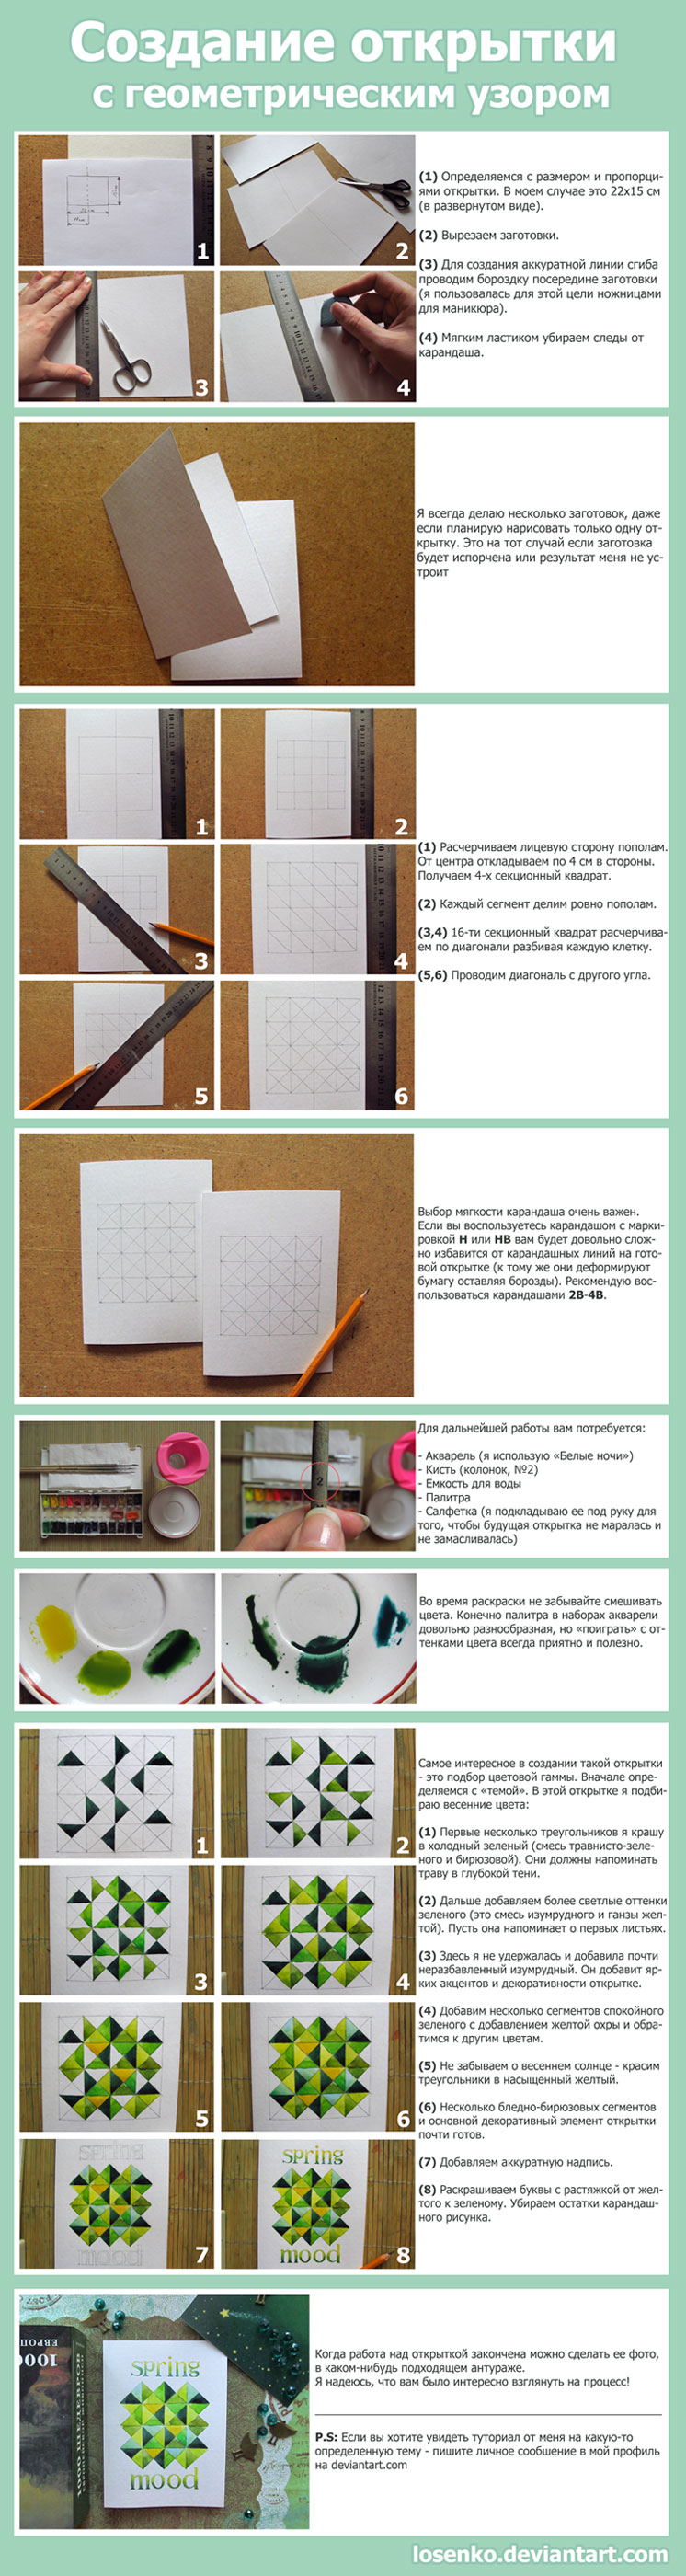 - Tutorial - Postcard with a geometrical pattern - by Losenko